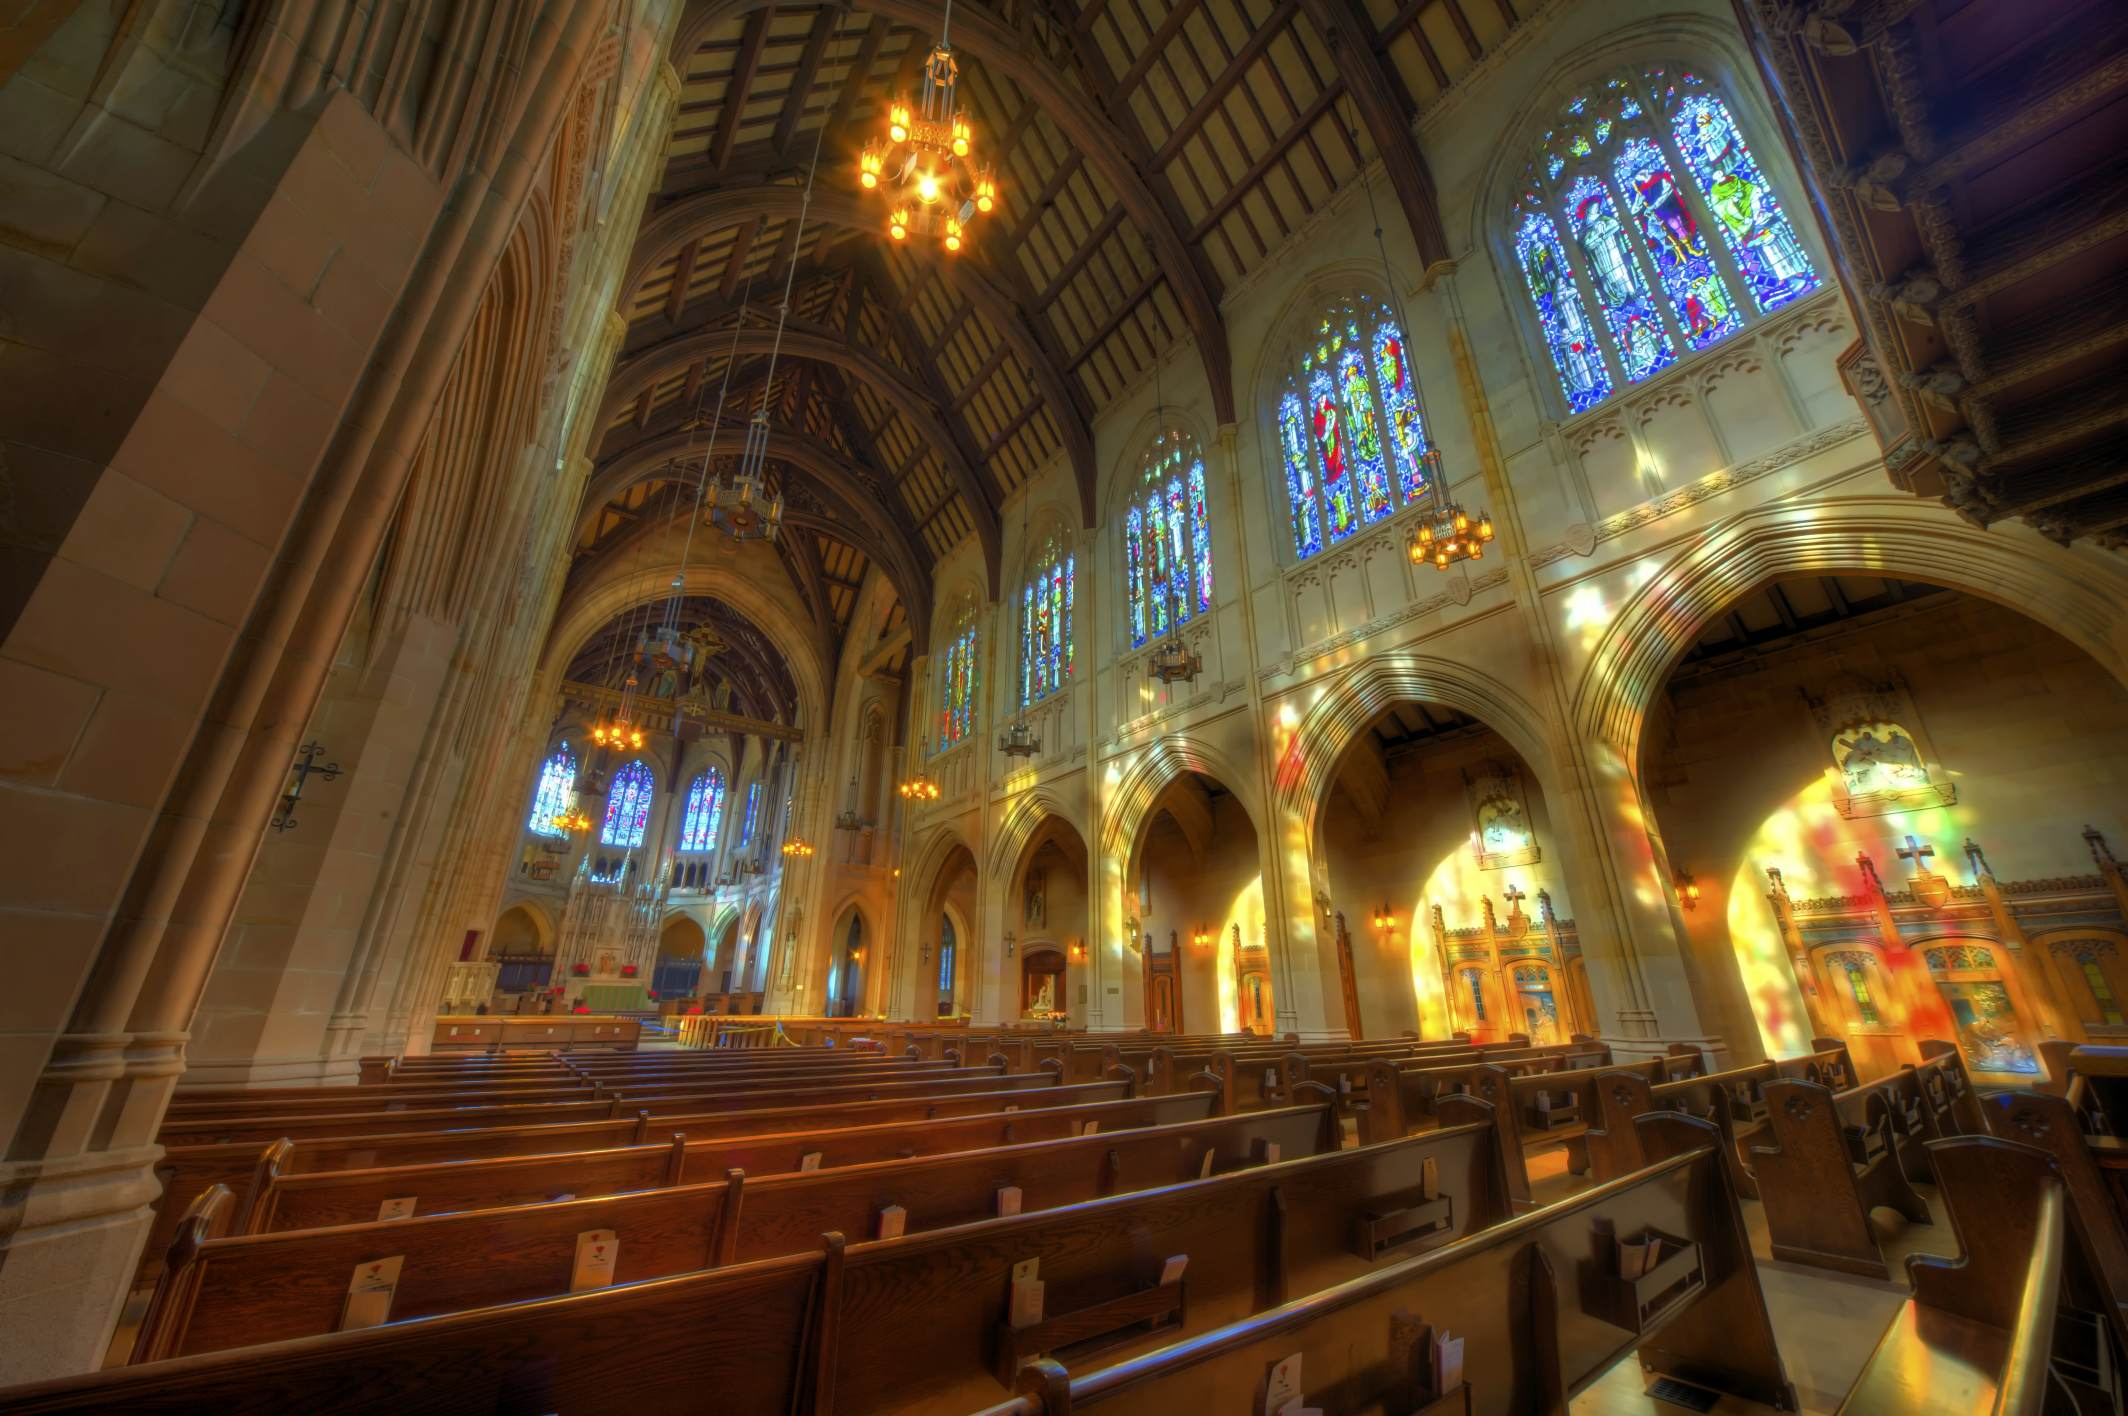 Nave of St. Dominic's Catholic Church in San Francisco image by David Yu